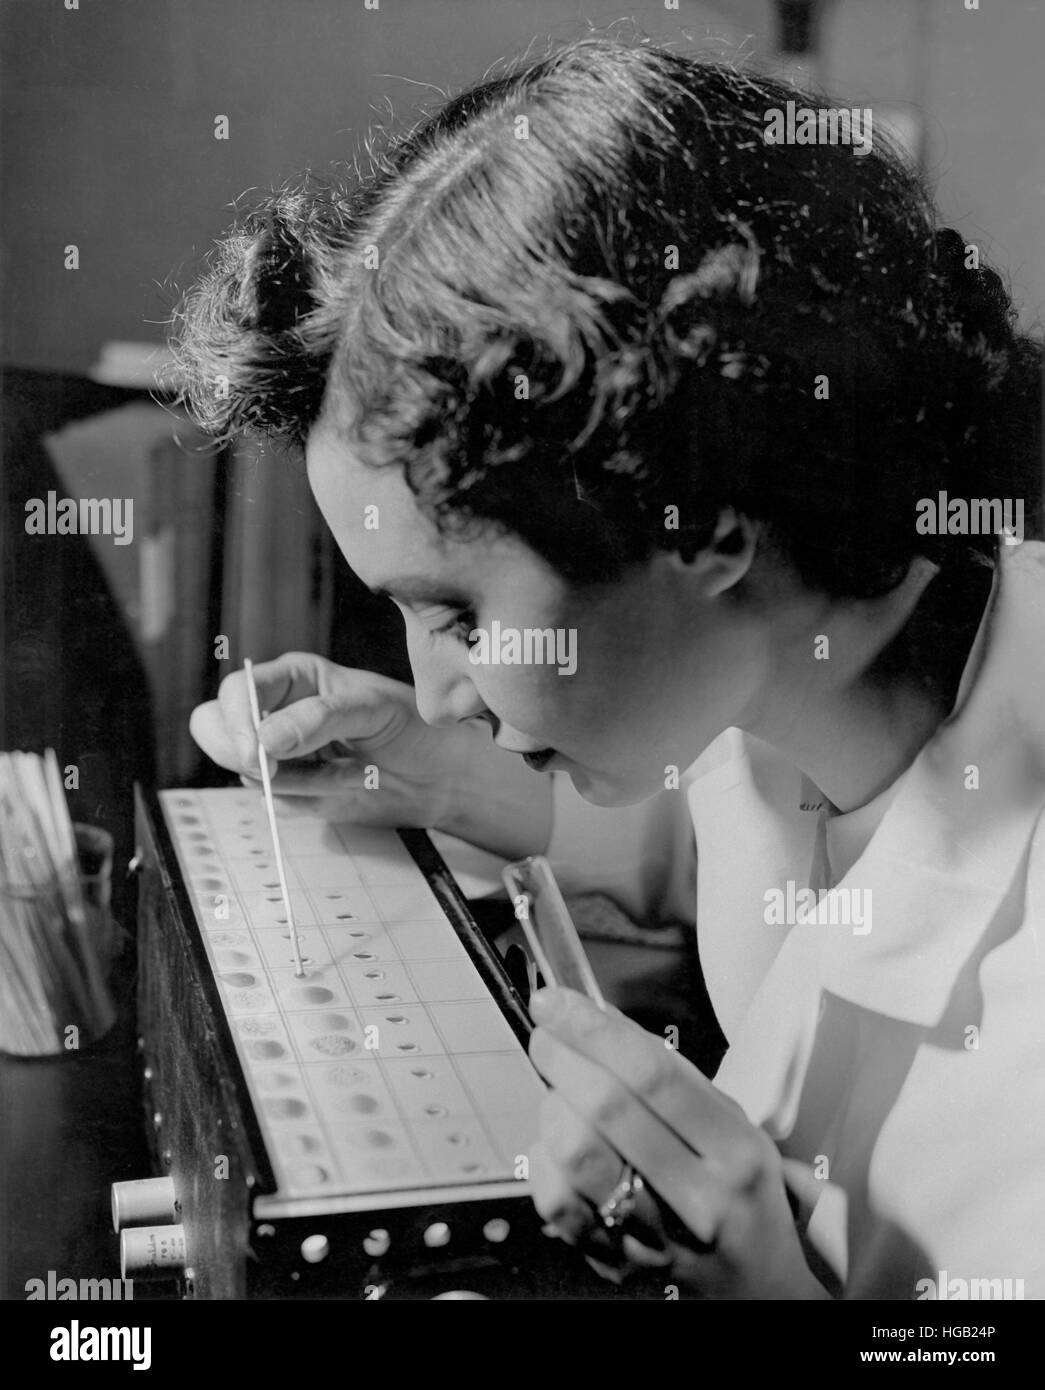 Laboratory technician displaying blood sample typing, 1957. - Stock Image